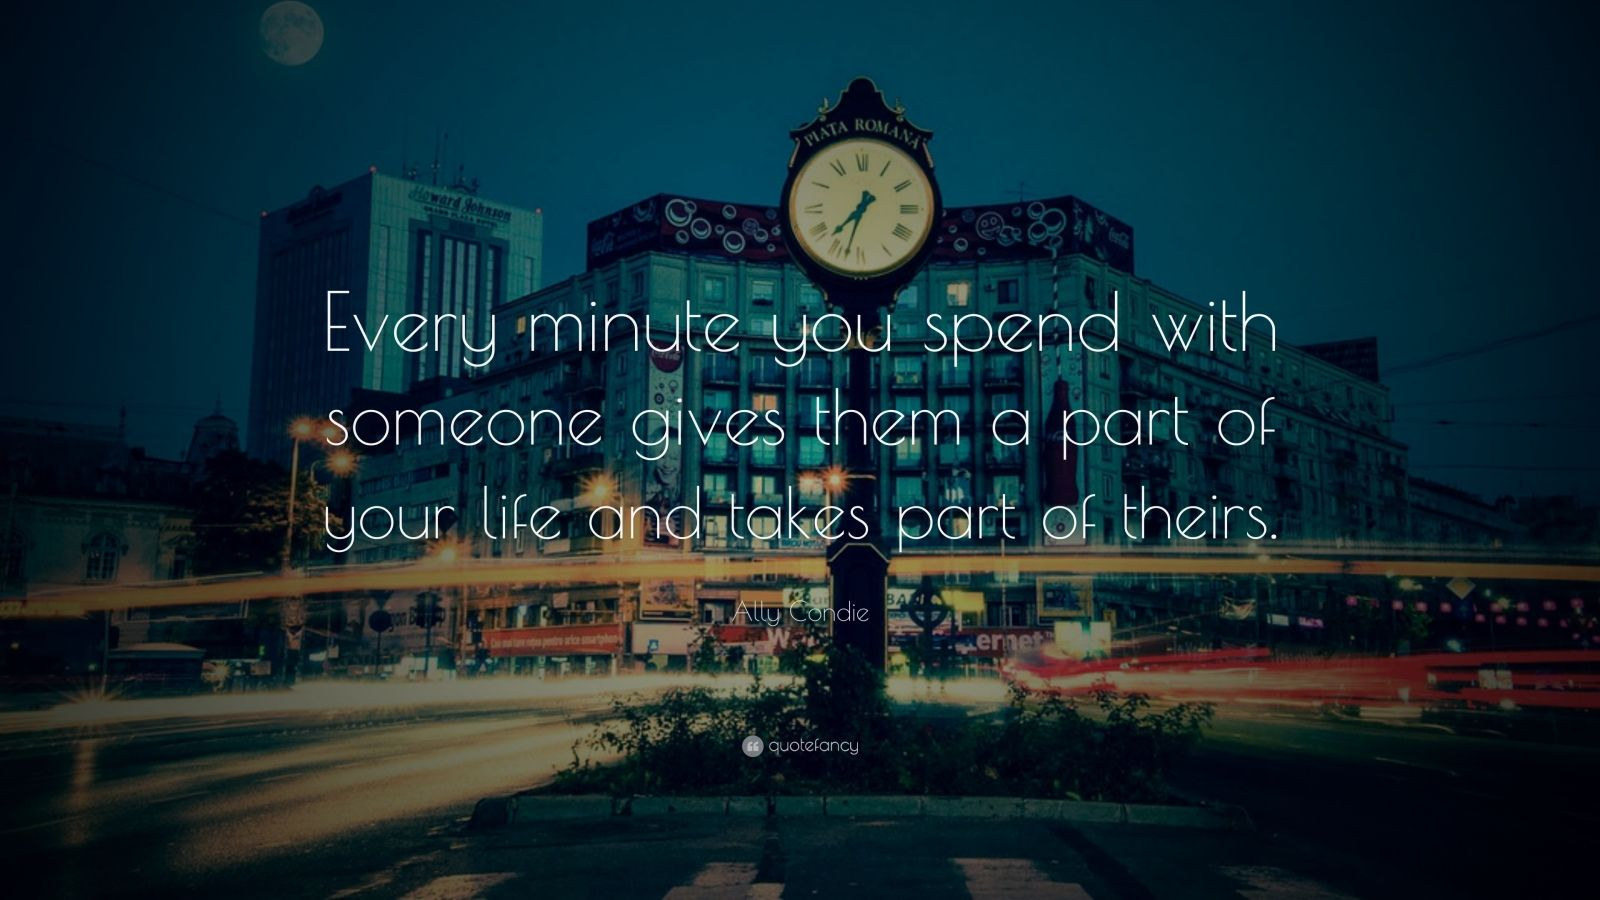 """Ally Condie Quote: """"Every minute you spend with someone gives them a part of your life and takes part of theirs."""""""